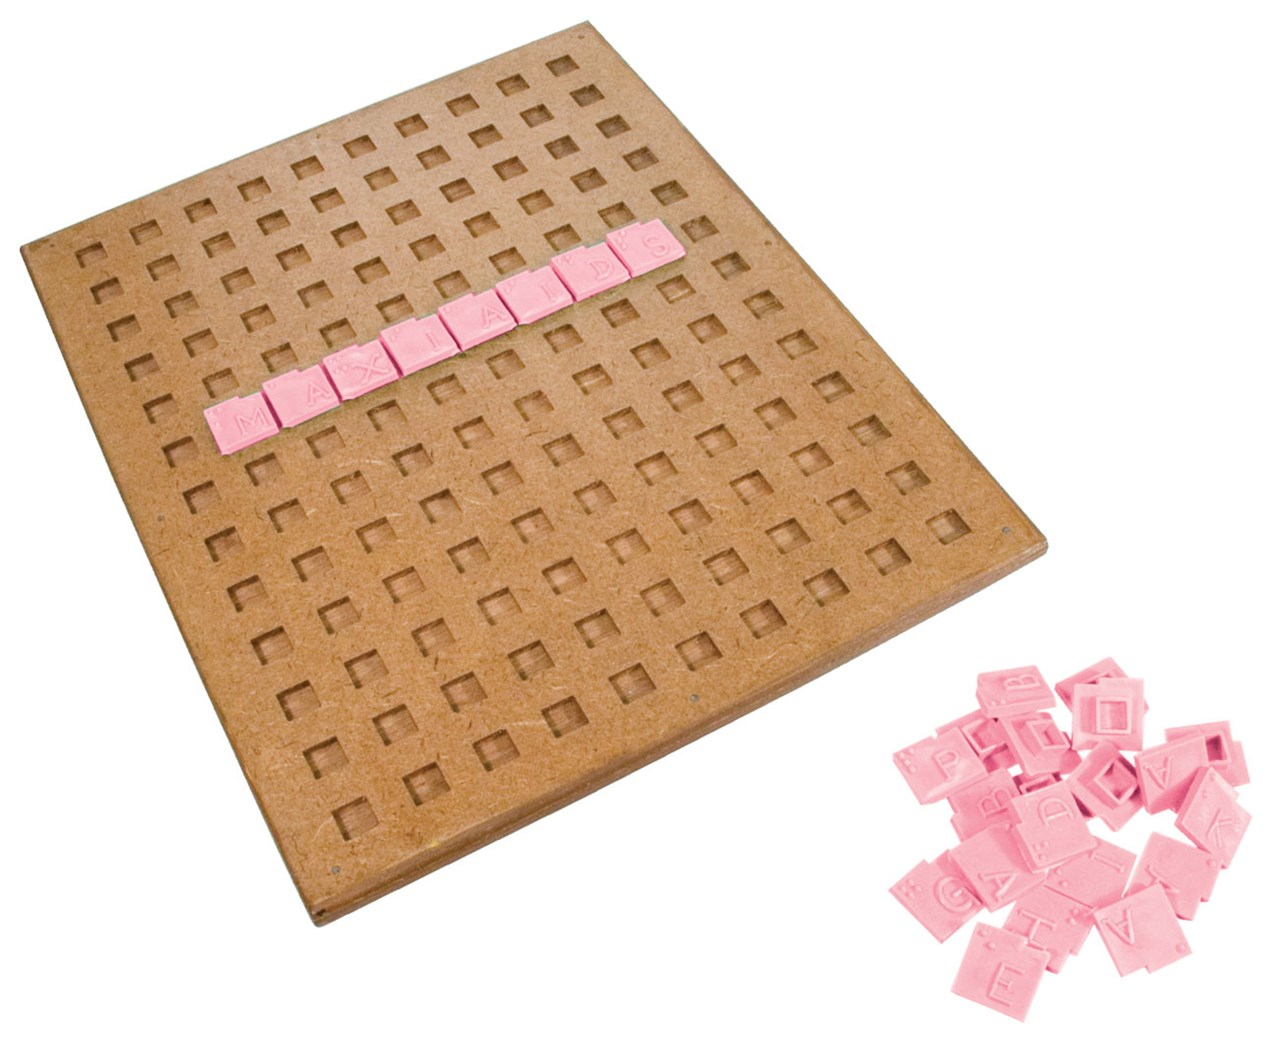 Maxiaids Tactile Braille Crossword Puzzle Game